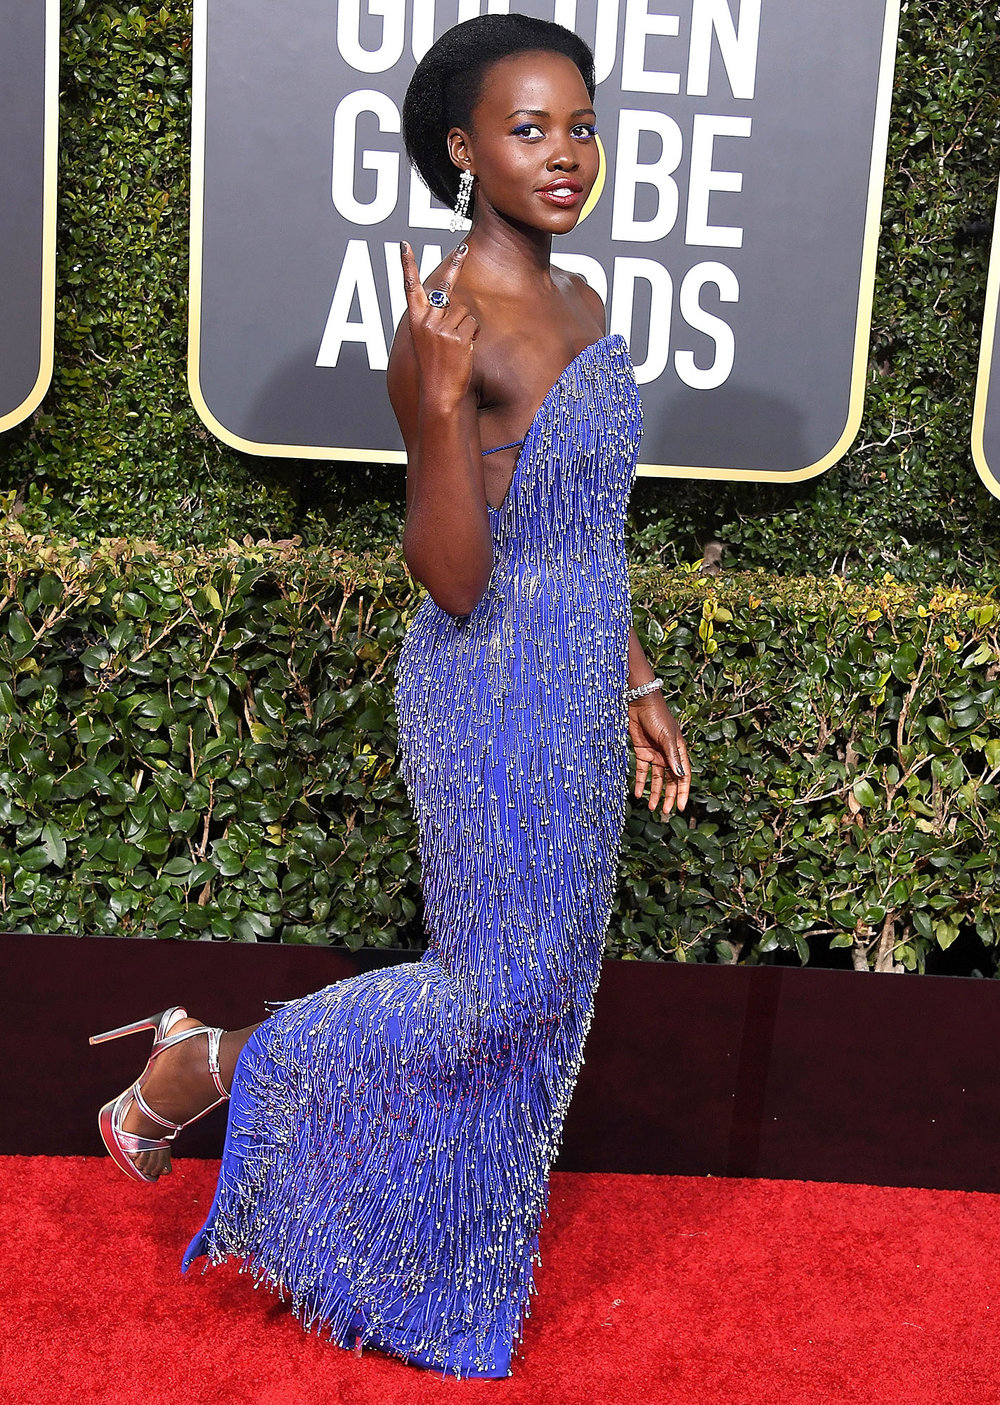 Lupita Nyong'o - gives us updated Gatsby vibes on the red carpet in electric Calvin Klein, chandelier earrings and a matching cuff, all while proving the higher the heel doesn't have to equal higher the price…